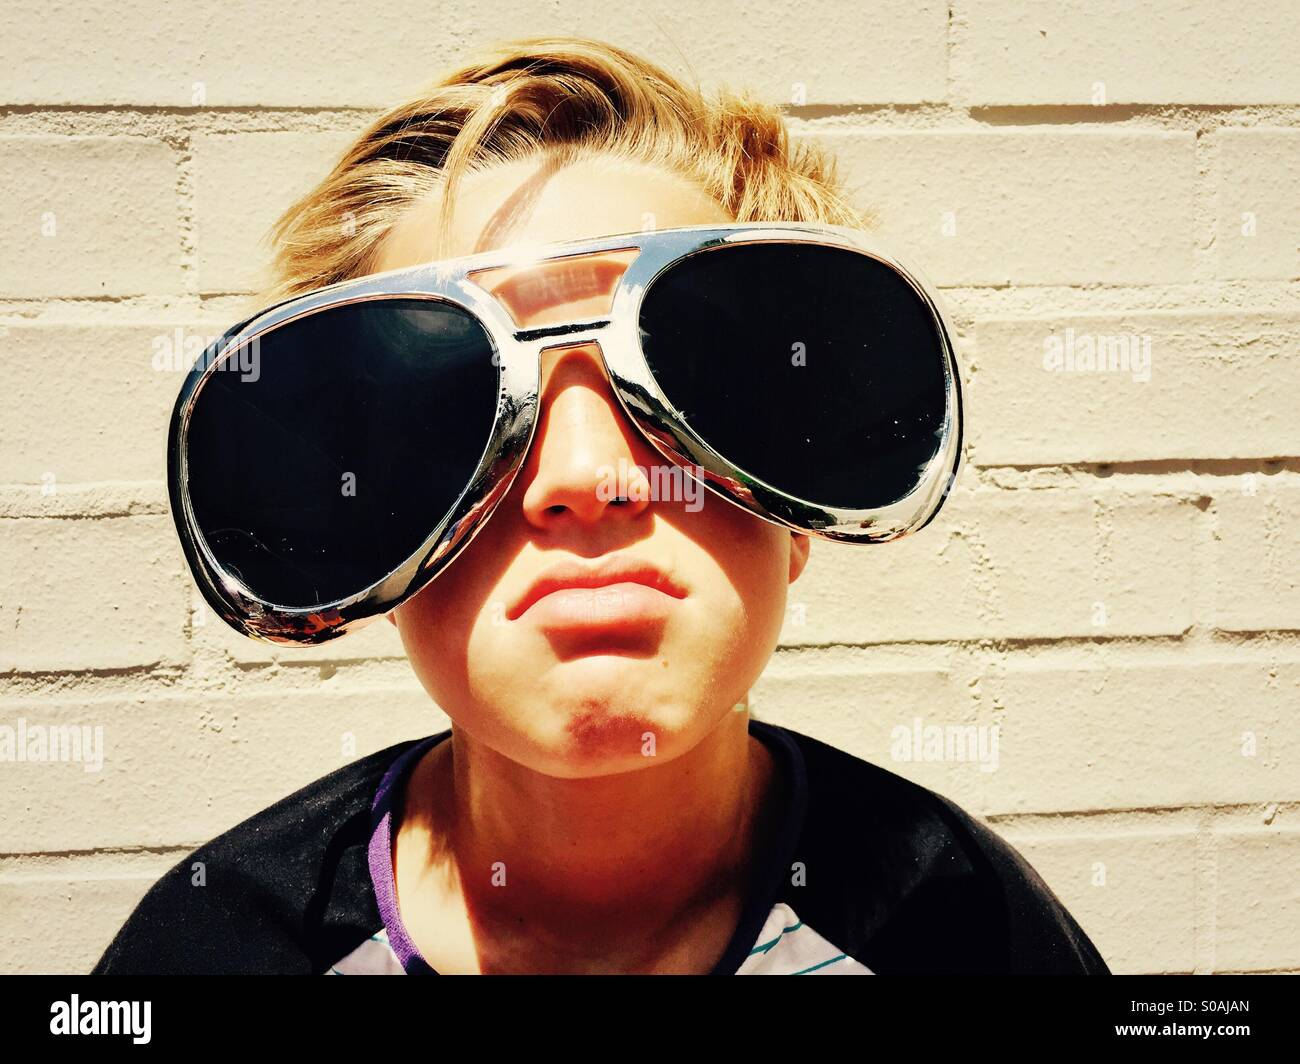 Boy with attitude on a sunny day - Stock Image